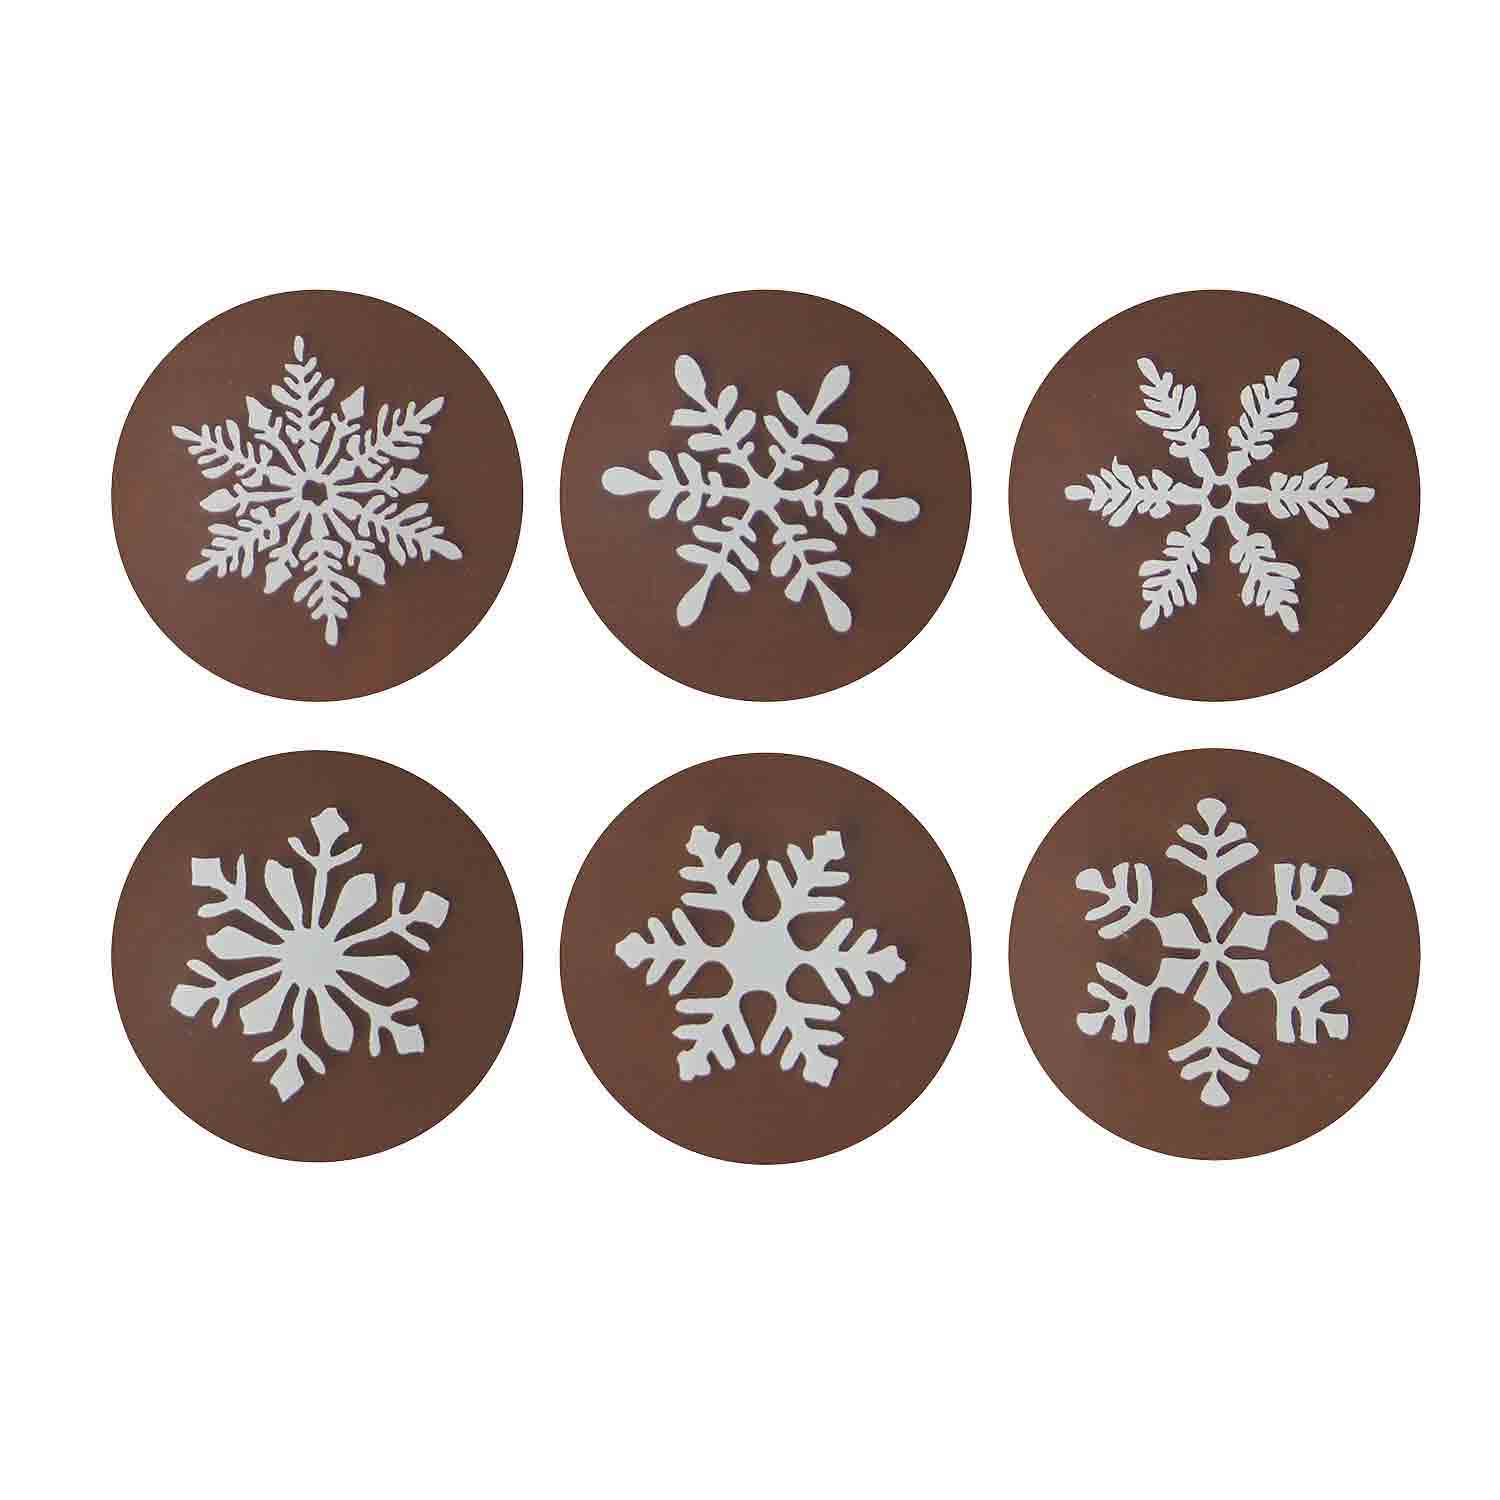 Chocolate Transfer Sheet - Snowflake White